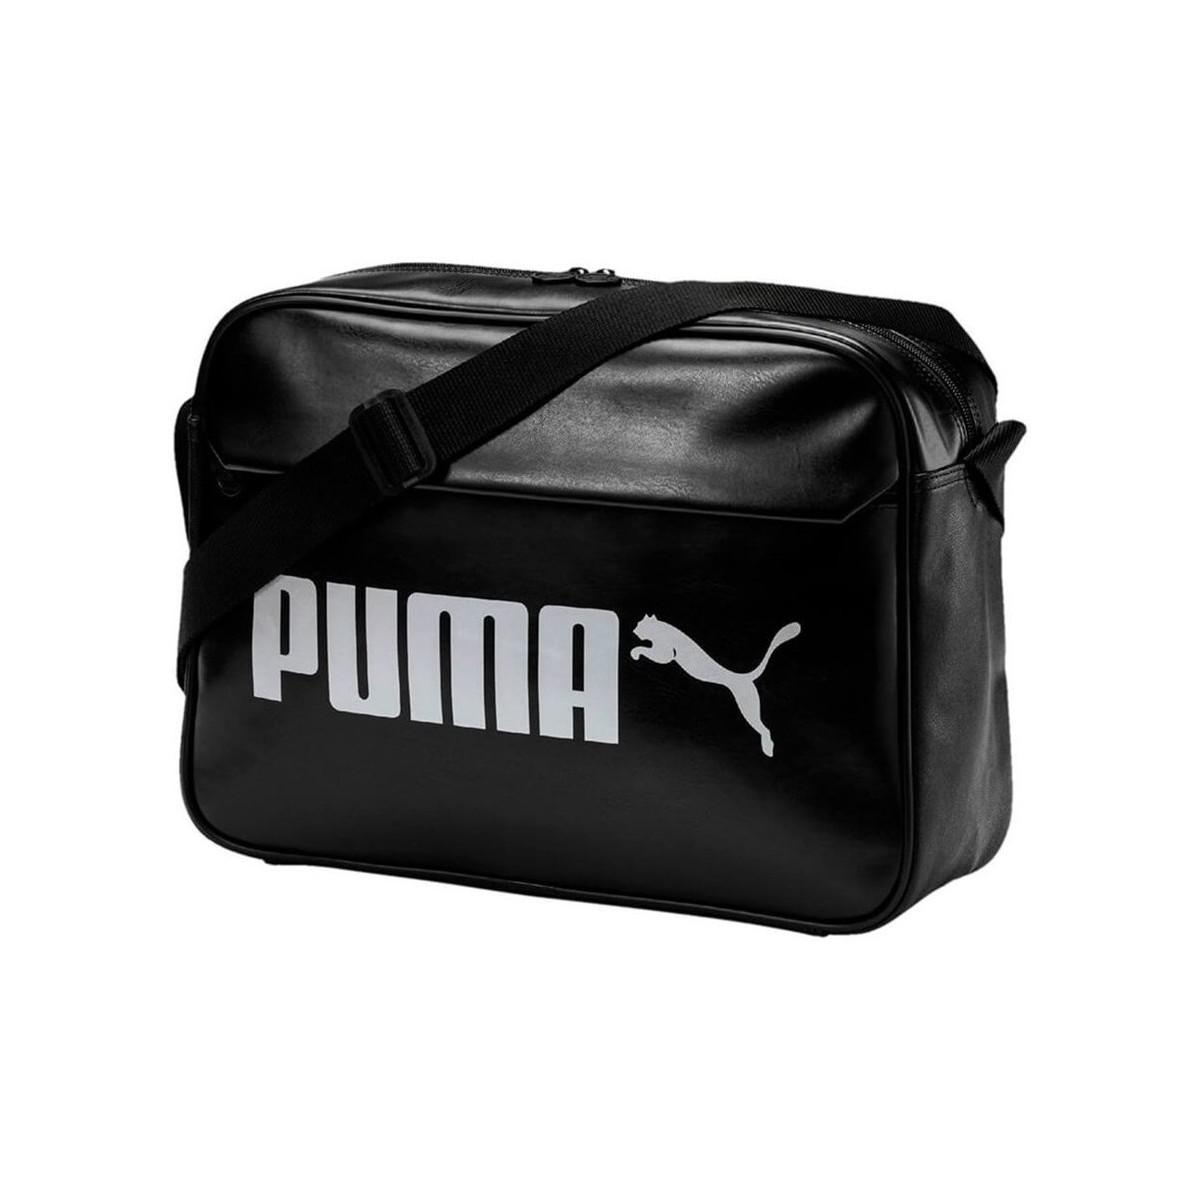 Puma Campus Reporter Bag Women s Shoulder Bag In Black in Black - Lyst 6e10ca11686